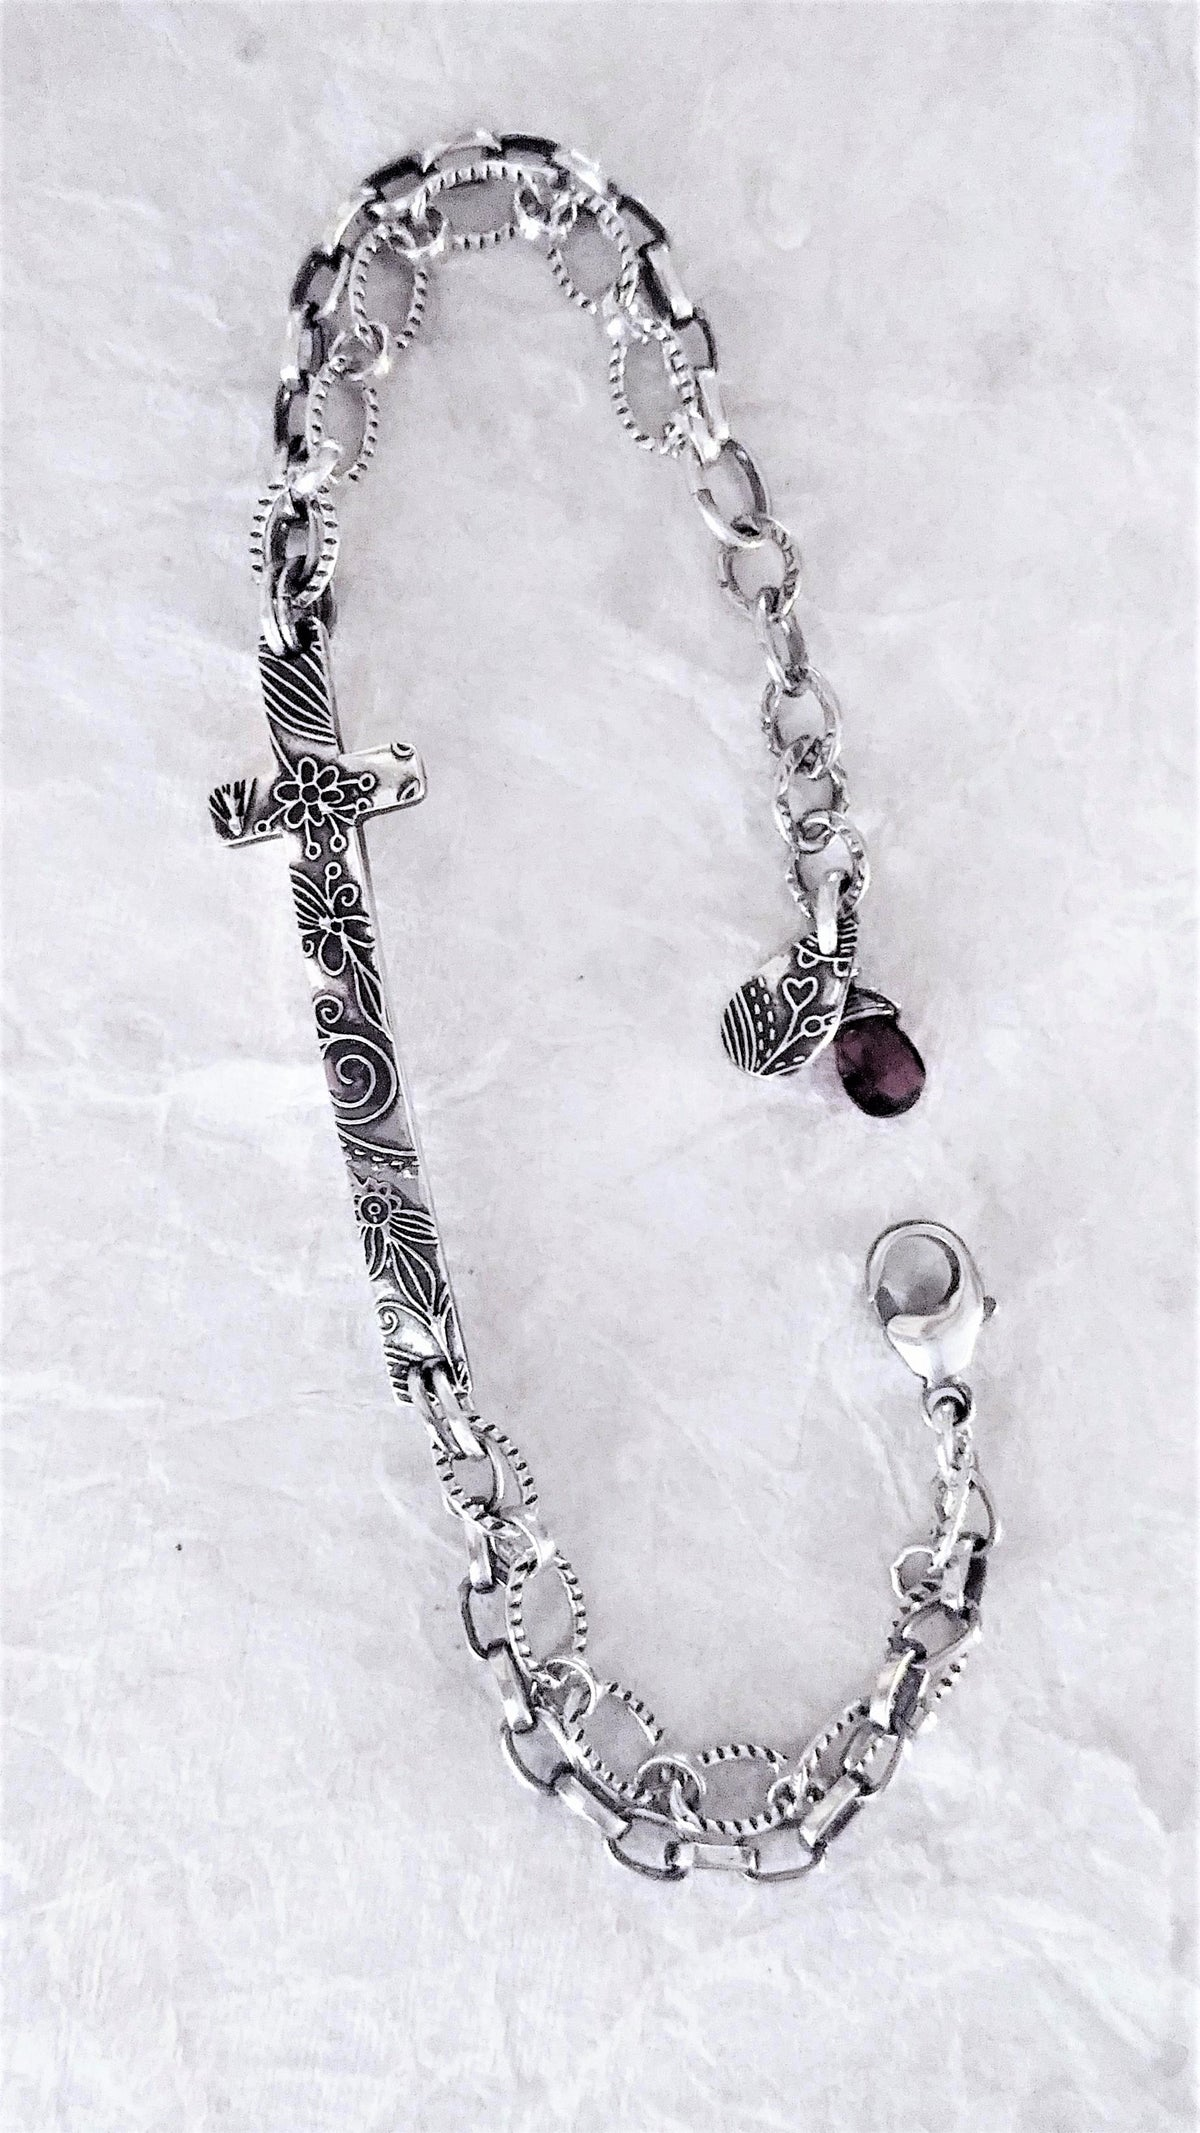 Image of Fineline Tapestry Cross Bracelet